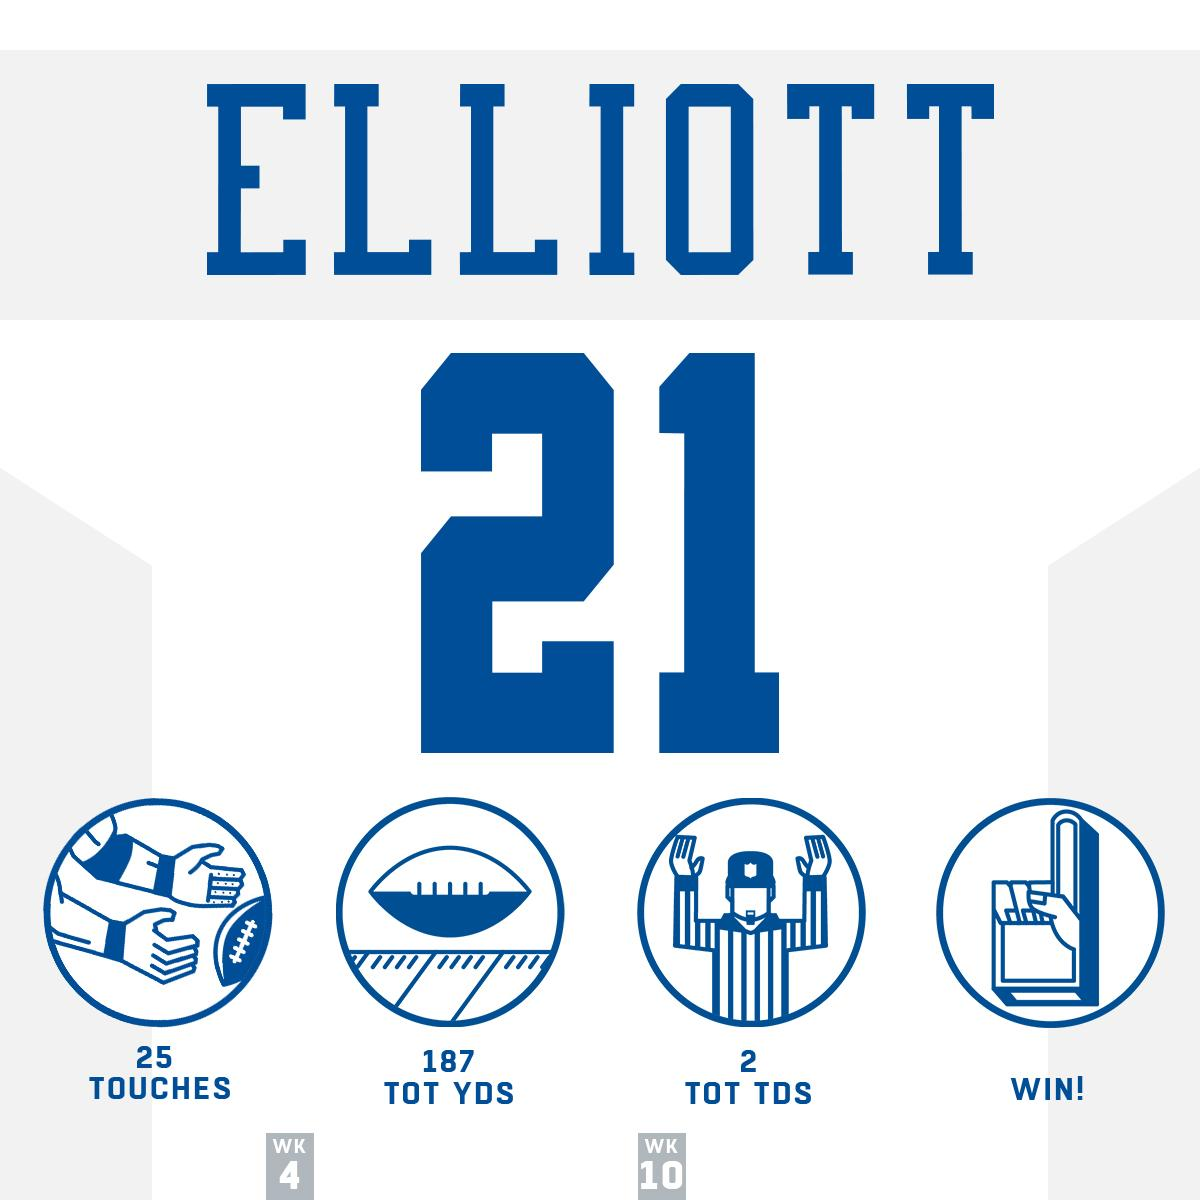 HUGE night for @EzekielElliott!  #HaveADay #DallasCowboys https://t.co/1xQZUqxJ8L